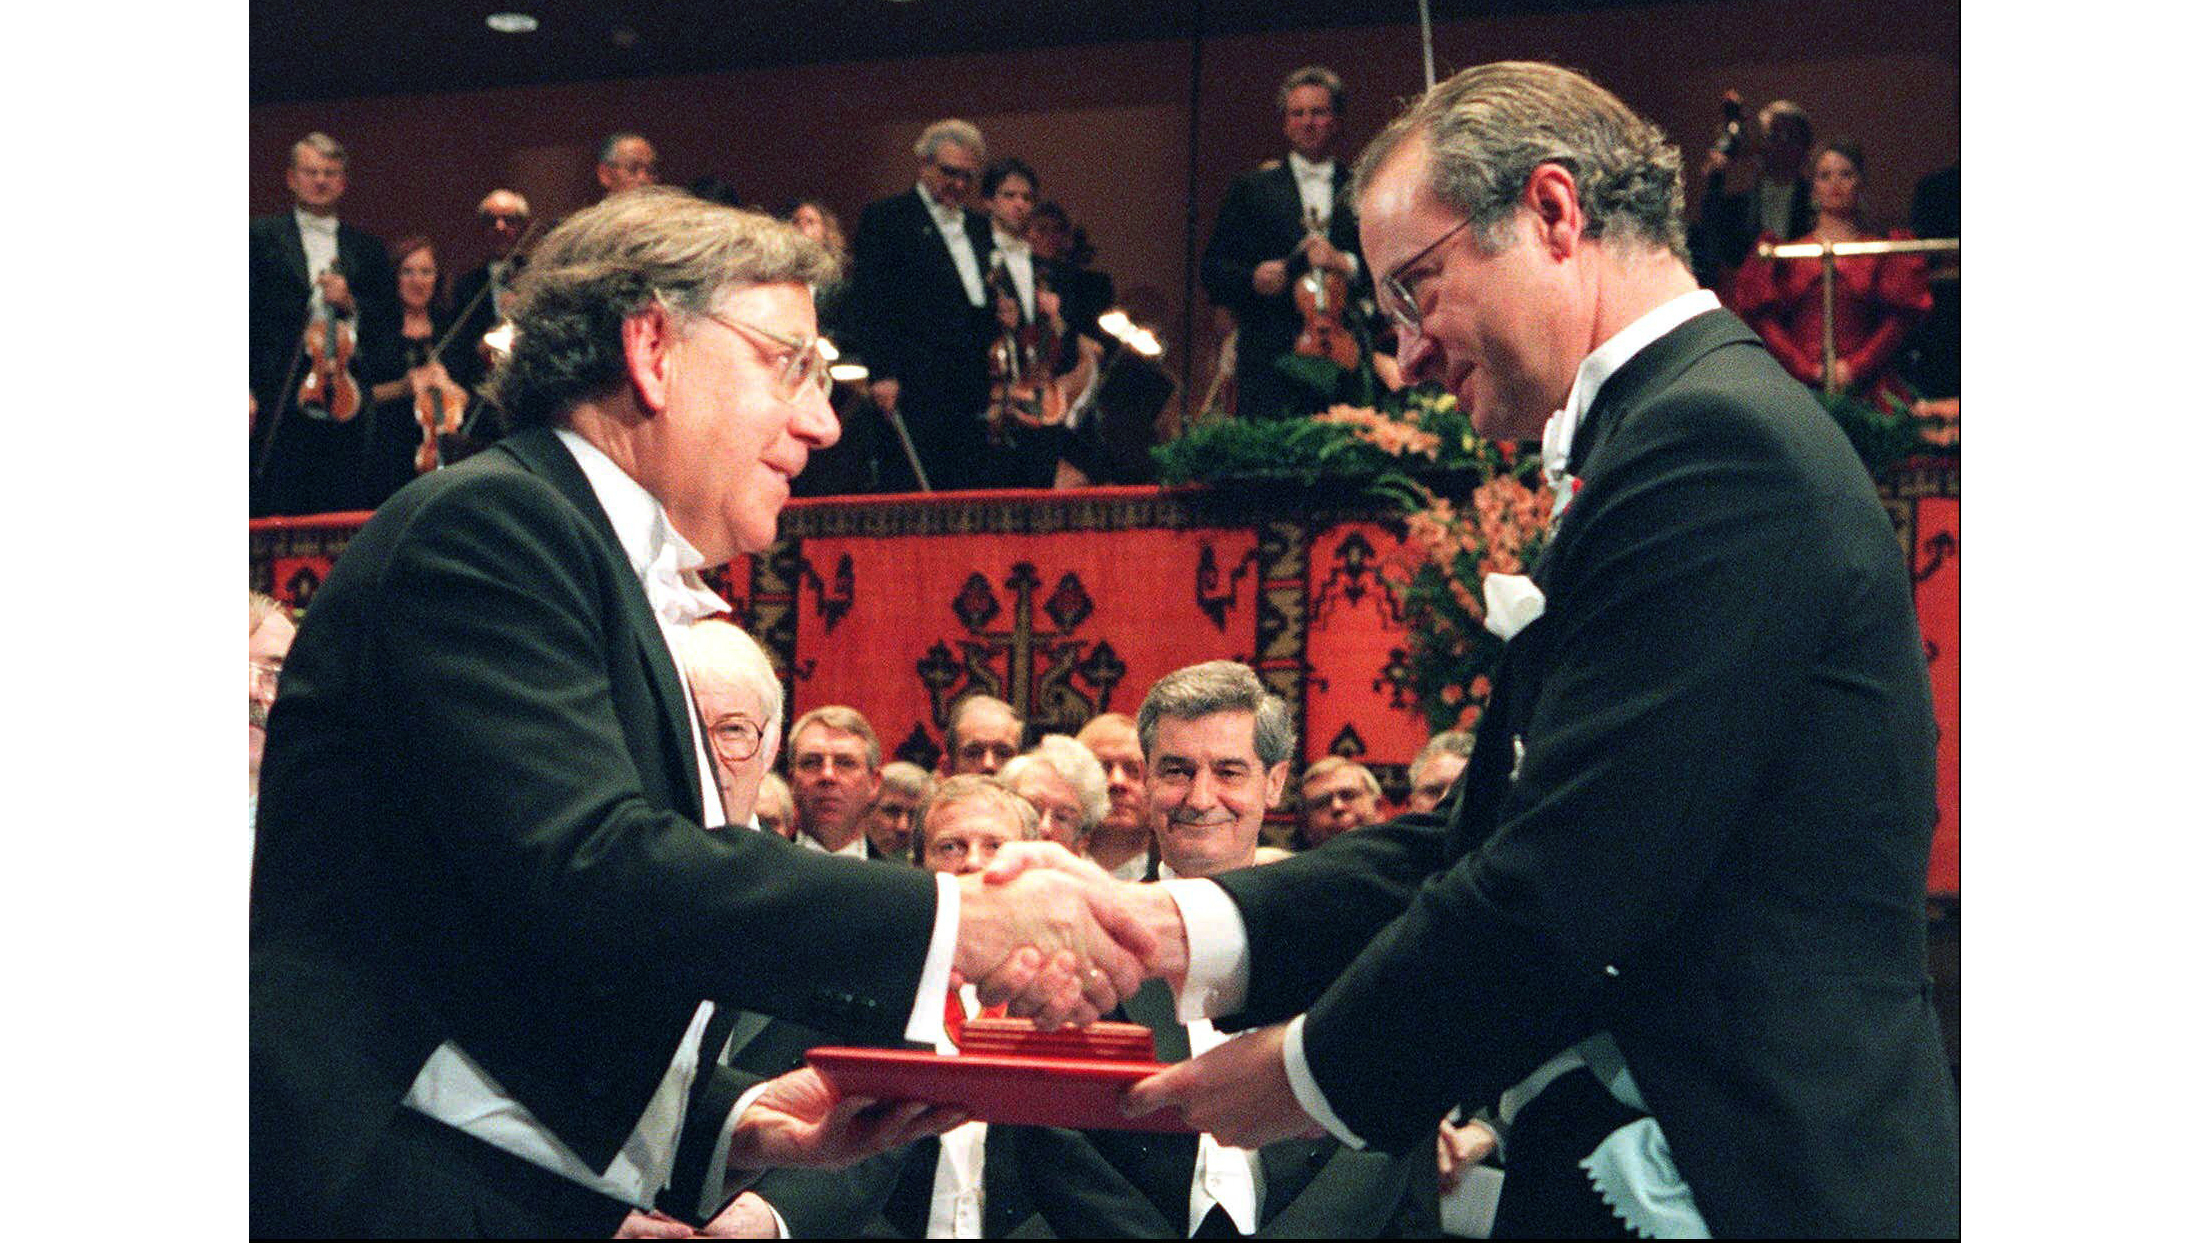 FILE - In this file photo dated December 10 1995, showing Dutch Professor Paul J. Crutzen, left, receiving the Nobel prize for chemistry from Swedish King Carl XVI Gustaf, at the Concert Hall in Stockholm, Sweden. According to a statement from the Max Planck Institute for Chemistry in Germany, Dutch scientist Paul J. Crutzen, who won the Nobel Prize for chemistry for his work understanding the ozone hole, died Thursday Jan. 28, 2021, at the age of 87. (AP photo/Eric Roxfelt, FILE)